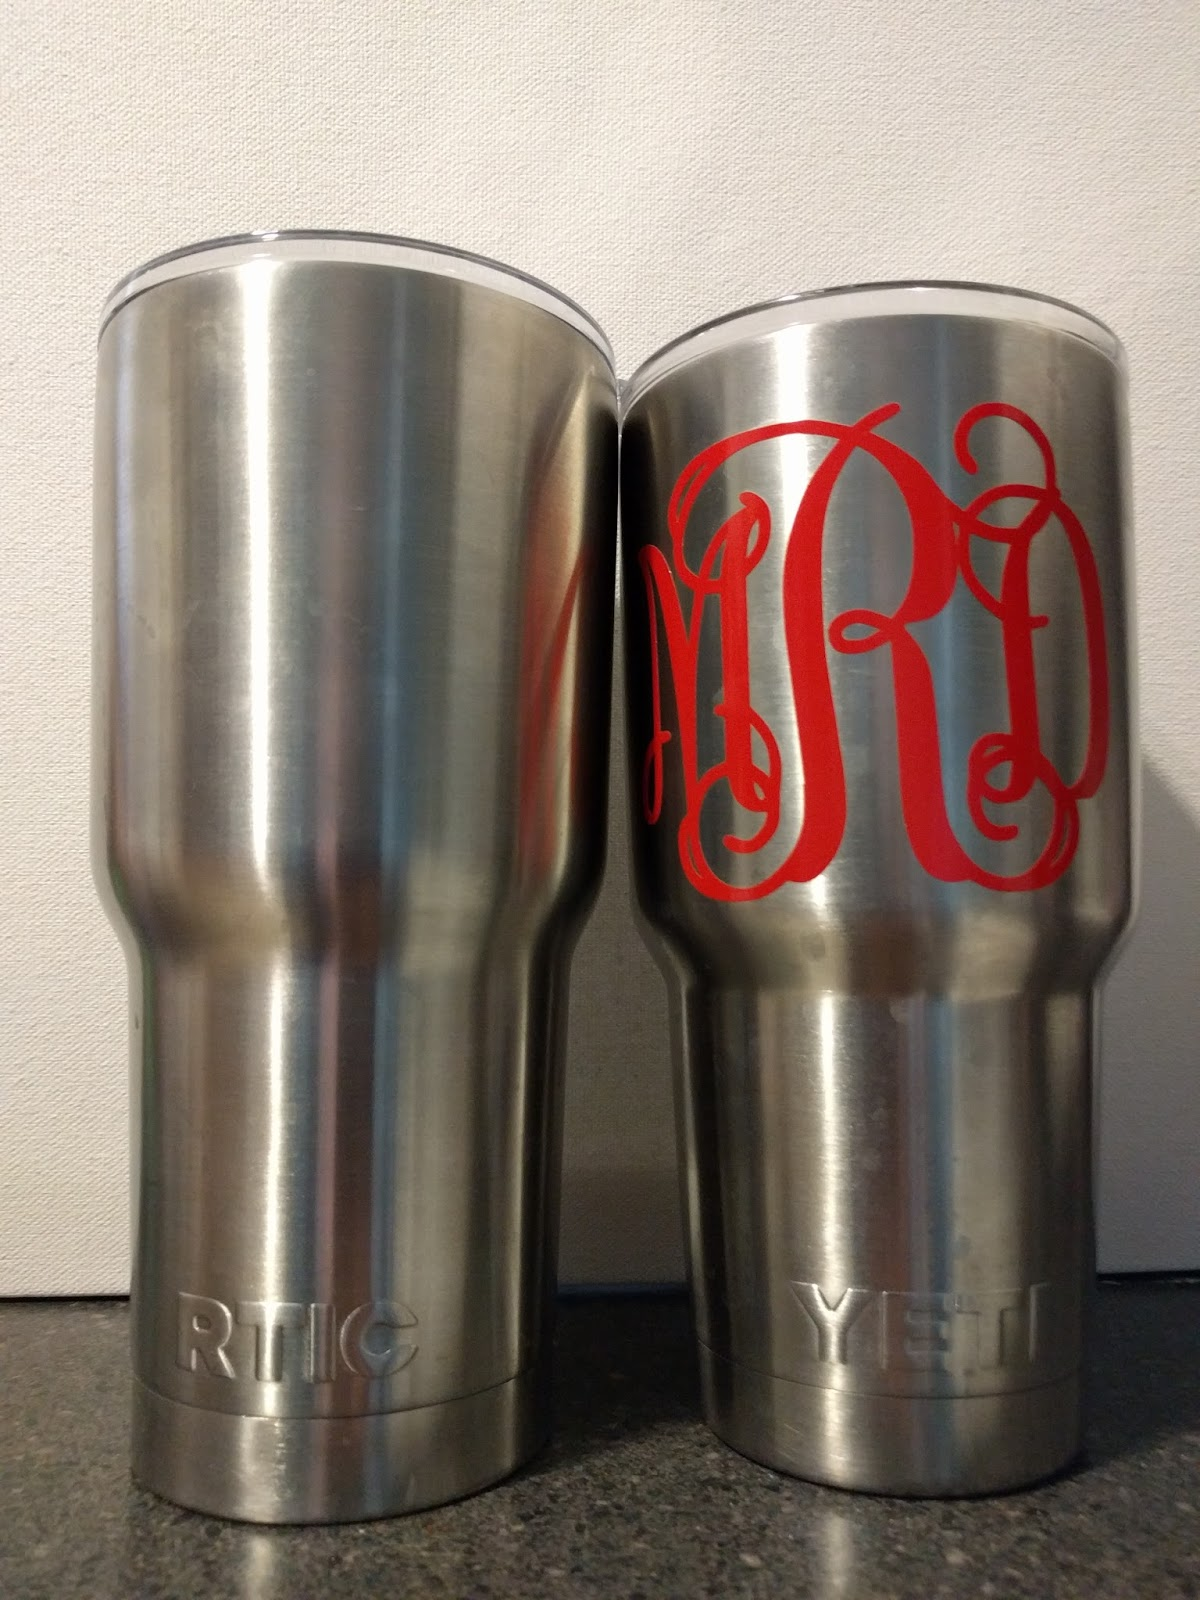 For Our Test We Are Going To Compare Both Products 30oz Tumblers While Double Wall Insulated Thermos Has Been Around A Long Time Large